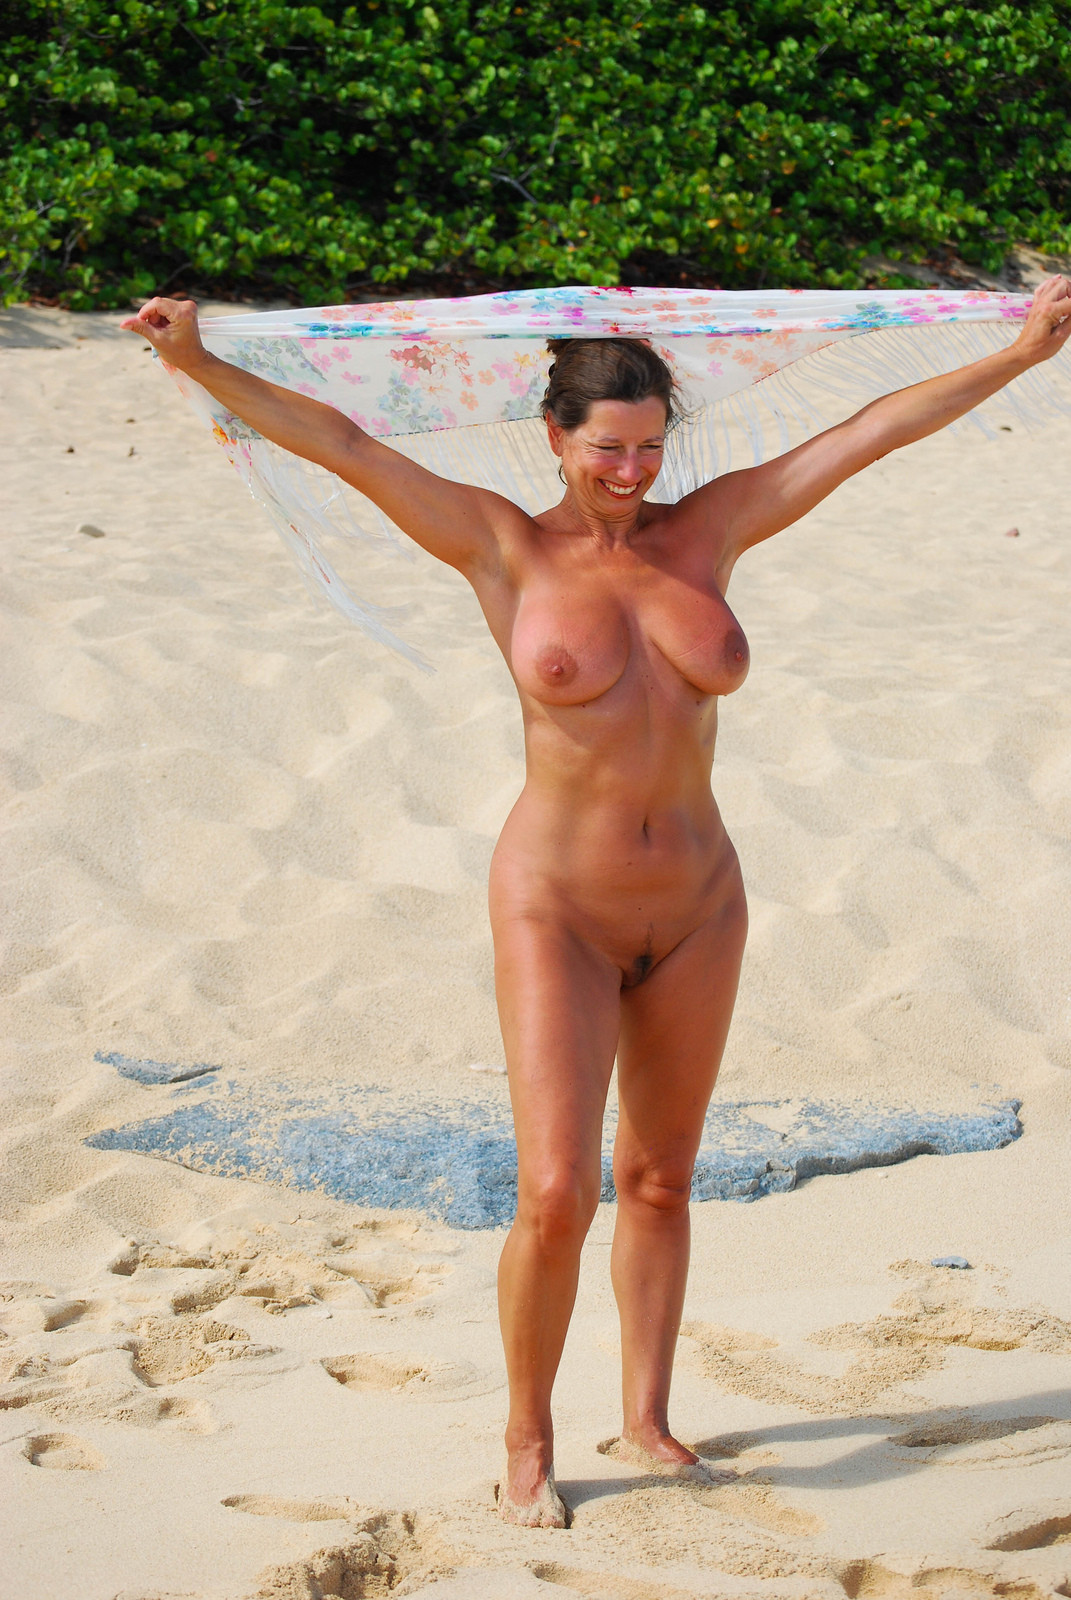 Lady. nudist beach wife 10:30